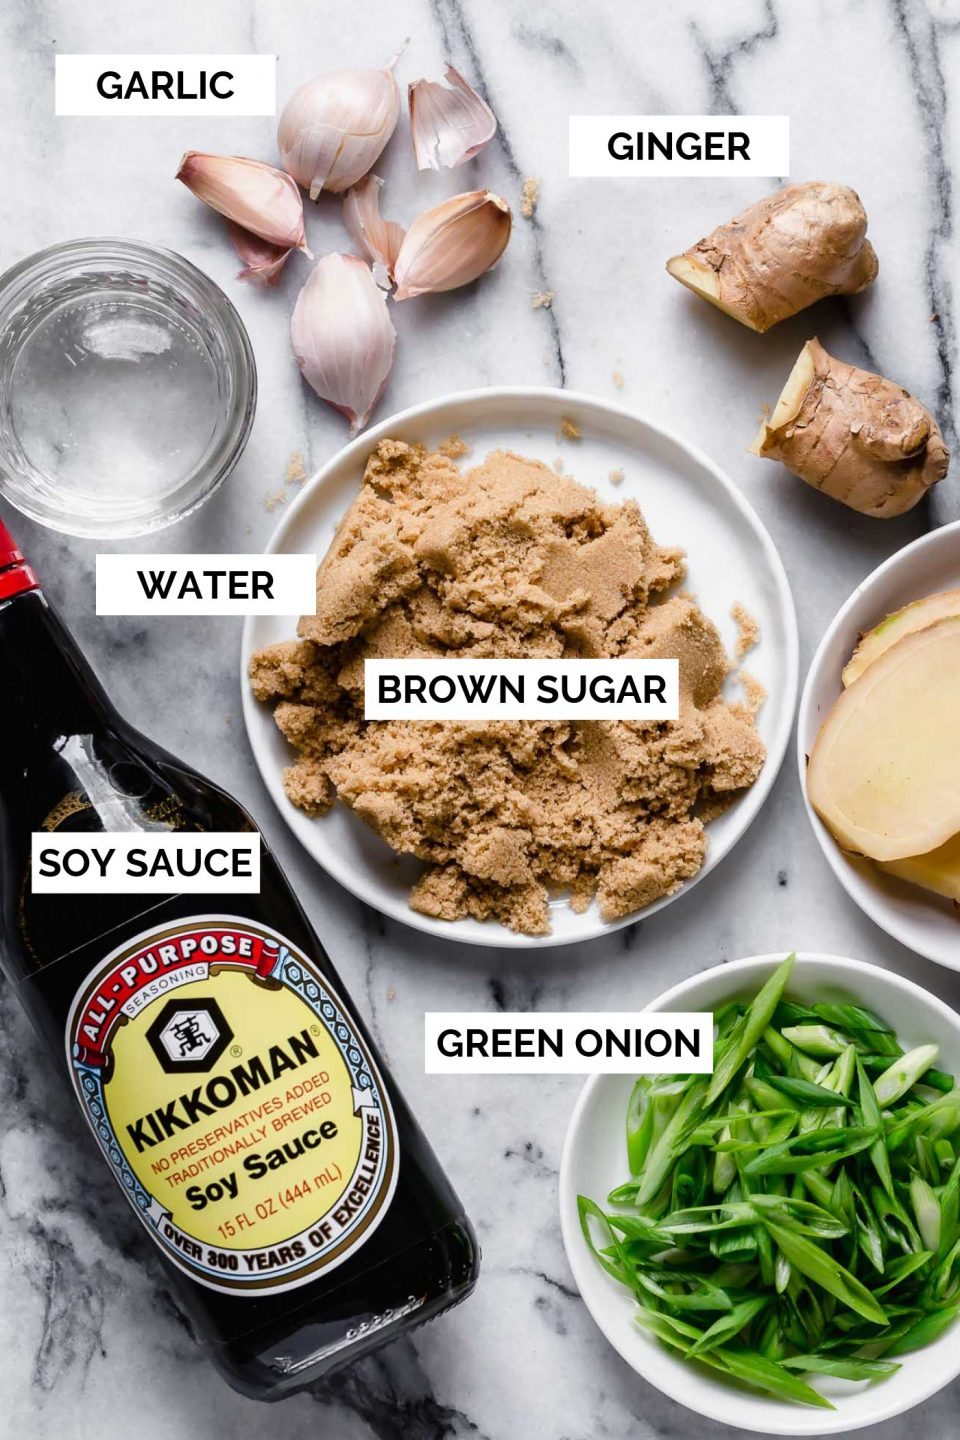 My mom's teriyaki recipe is the perfectly balanced teriyaki sauce, with just the right amount of umami from soy sauce, ginger, & garlic, & a beautiful sweetness from brown sugar, which helps create an addictively caramelized crust on whatever you're grilling. The perfect teriyaki sauce recipe to make teriyaki chicken, teriyaki beef, or teriyaki burgers! #playswellwithbutter #marinaderecipe #easymarinade #grillingrecipes #teriyaki #teriyakisauce #teriyakimarinade #teriyakichicken #teriyakibeef